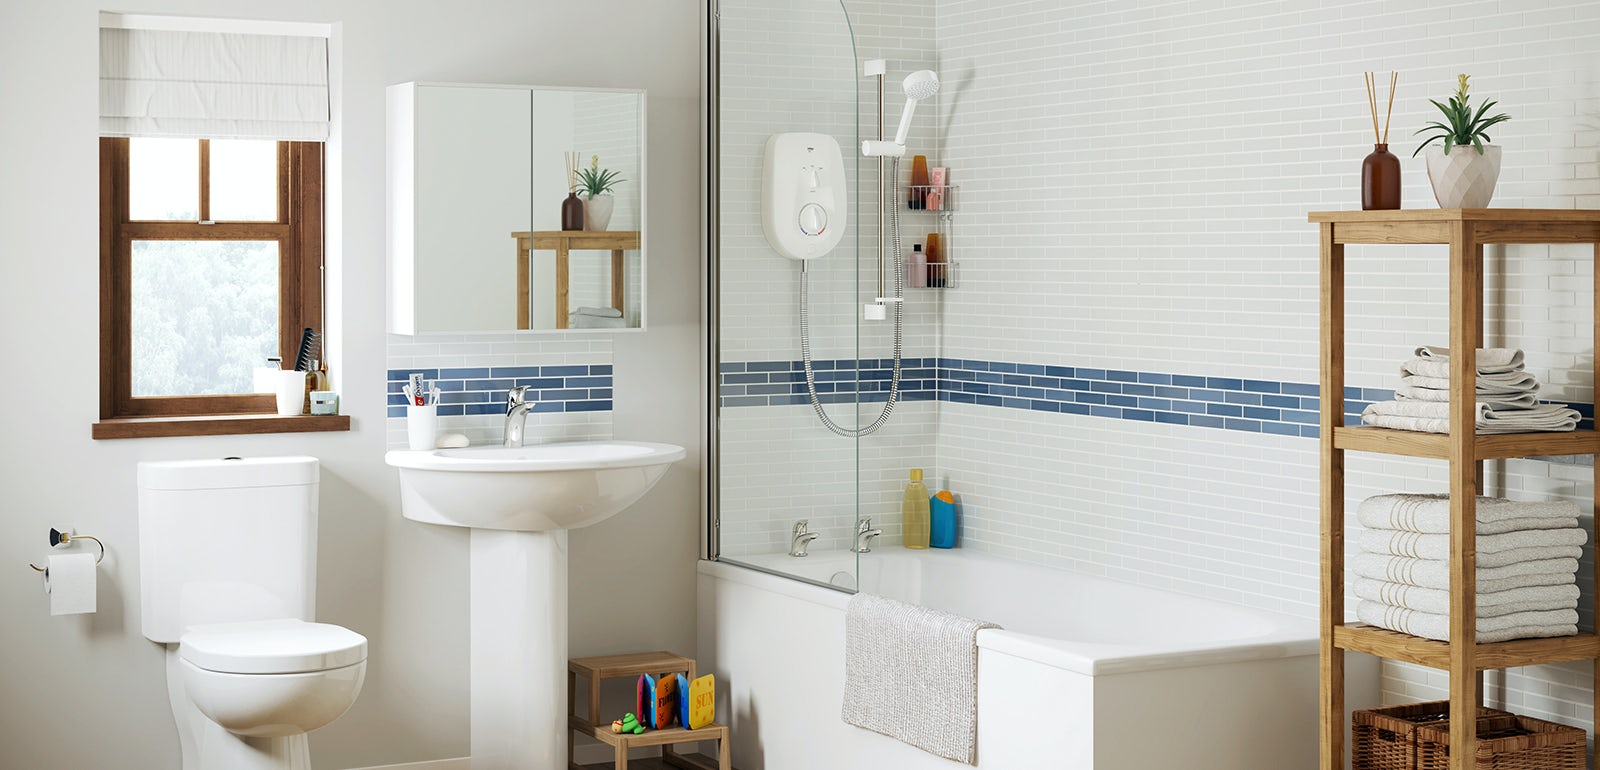 Shower & enclosure bathroom cleaning tips from Mira Showers ...